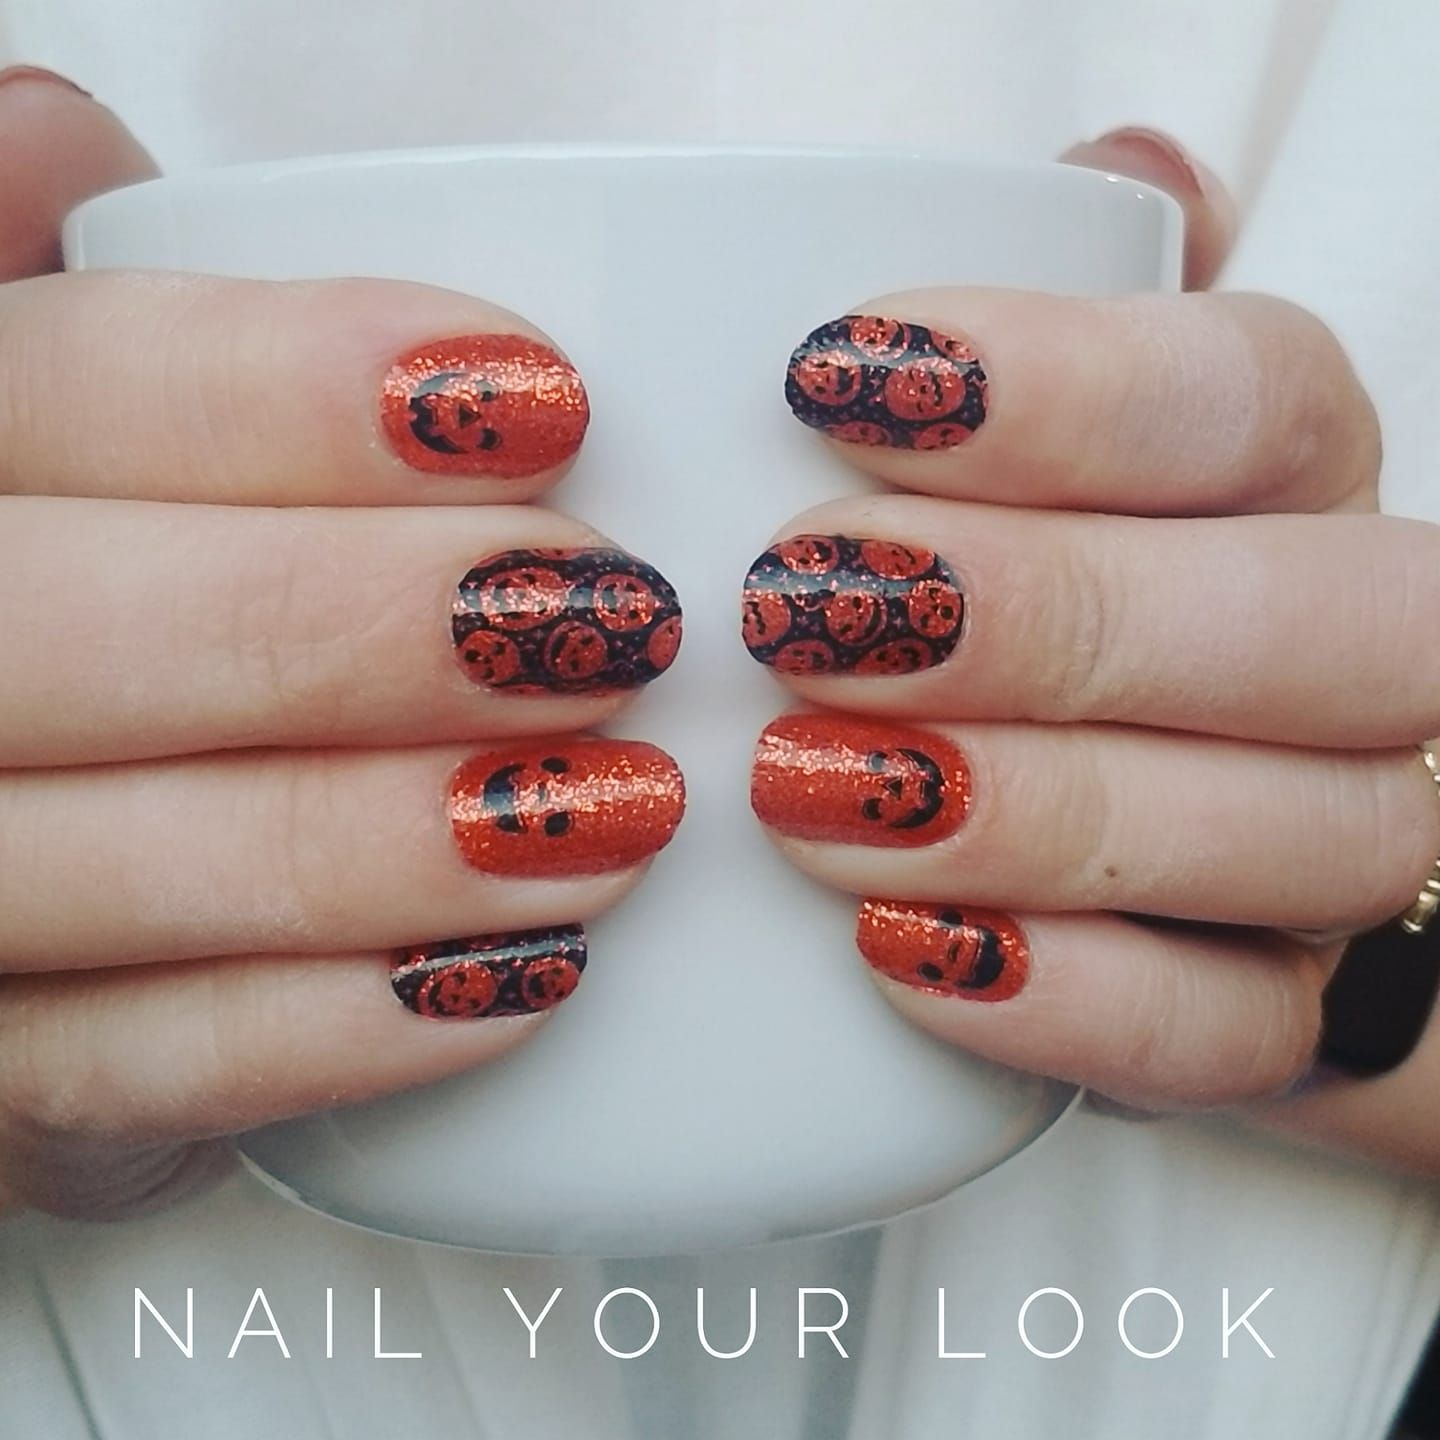 These Halloween Color Street Nails Set Is Called Oh My Gourd And They Are So Cute Color Street Is 100 Nailpolish S Color Street Nails Color Street Nails